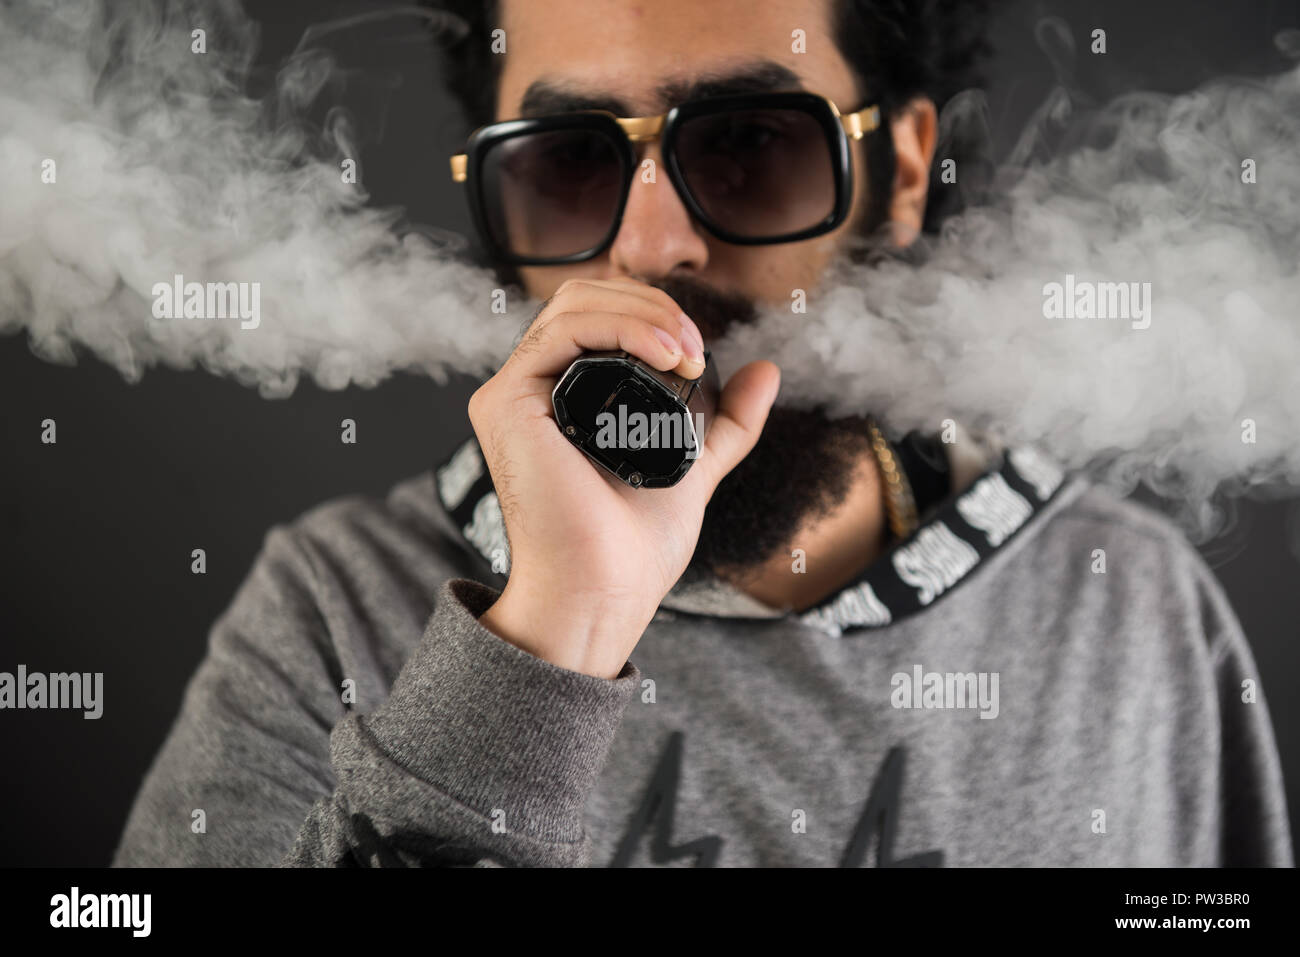 Portrait of a young guy with big beard and sunglasses and vaping an electronic cigarette on a black background. - Stock Image